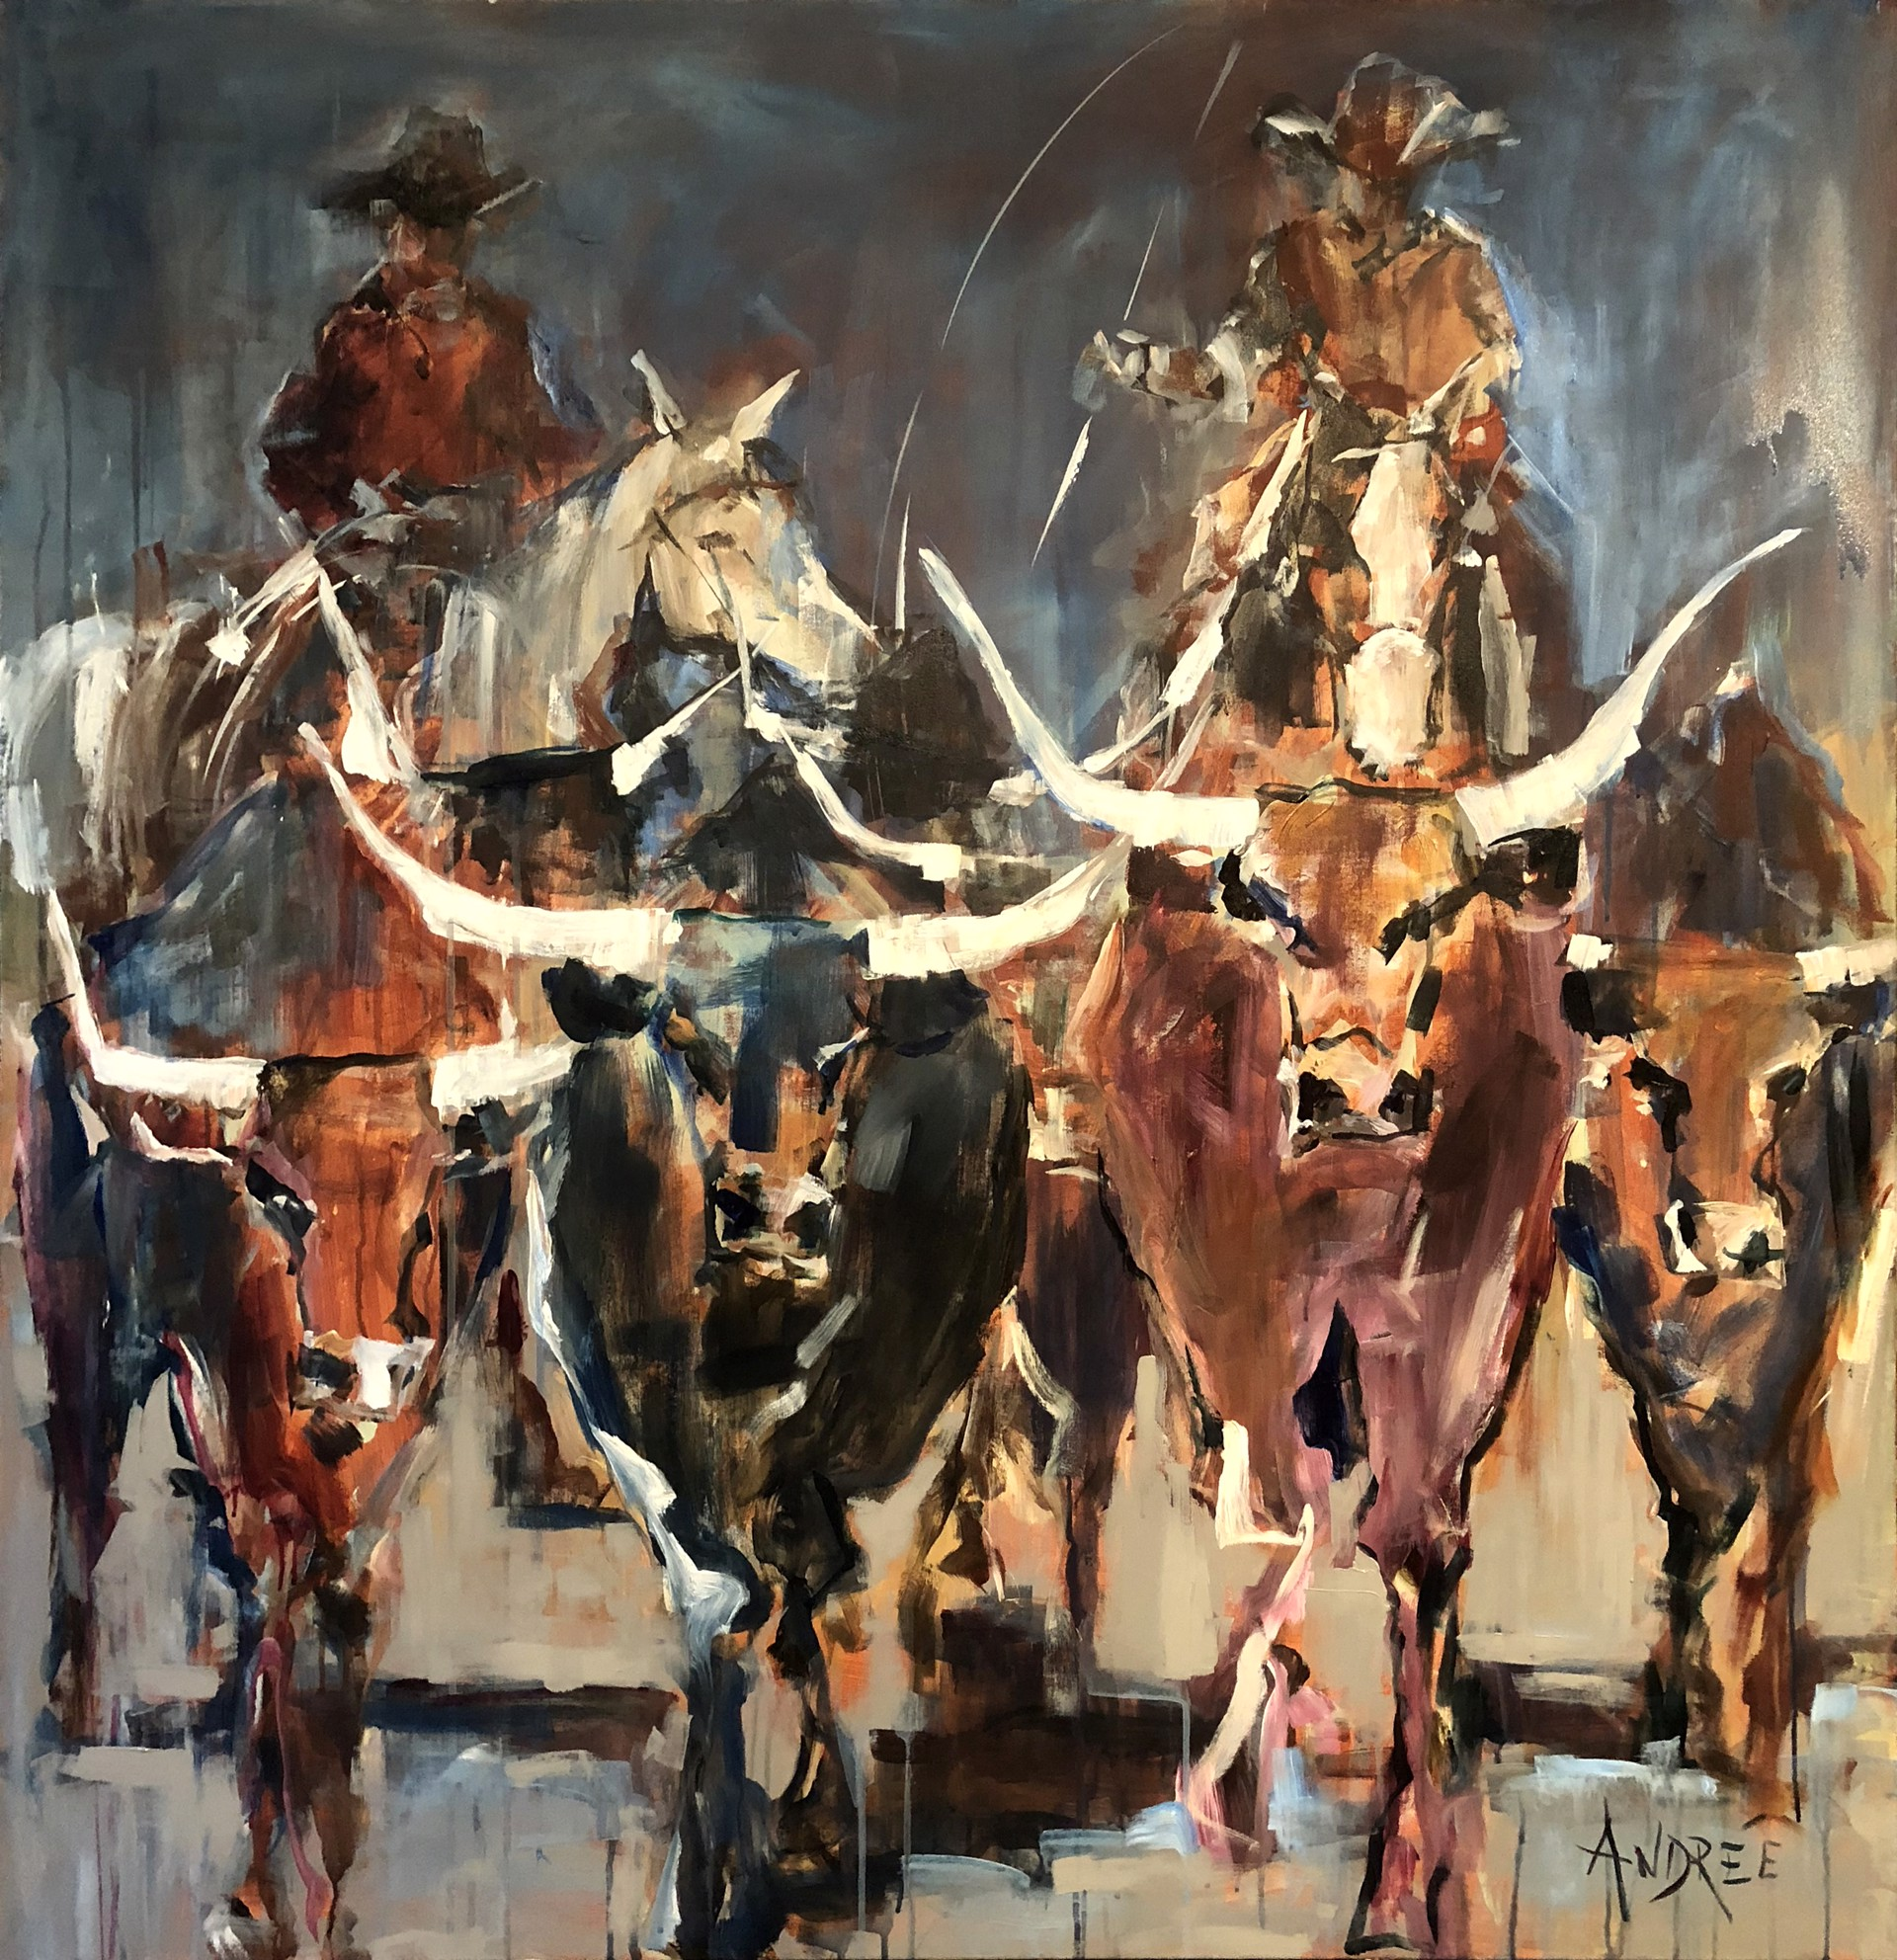 Moving the Herd by Andrée Hudson